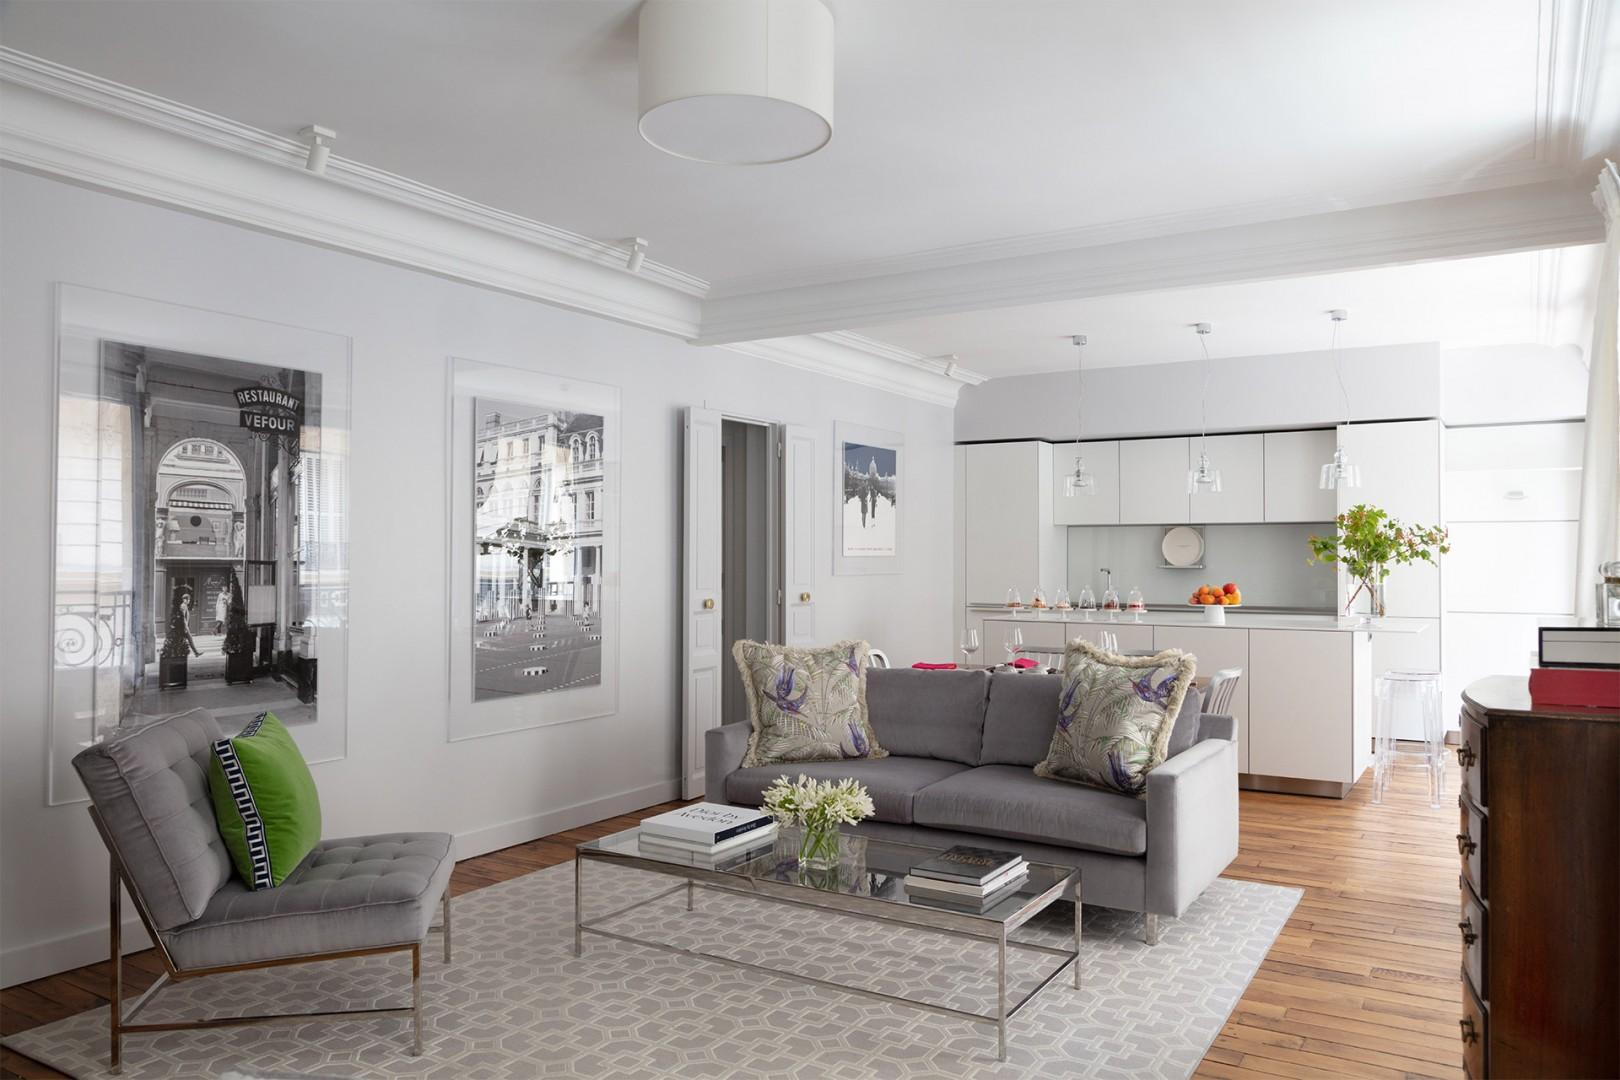 Relax in the comfortable seating area in the living room.